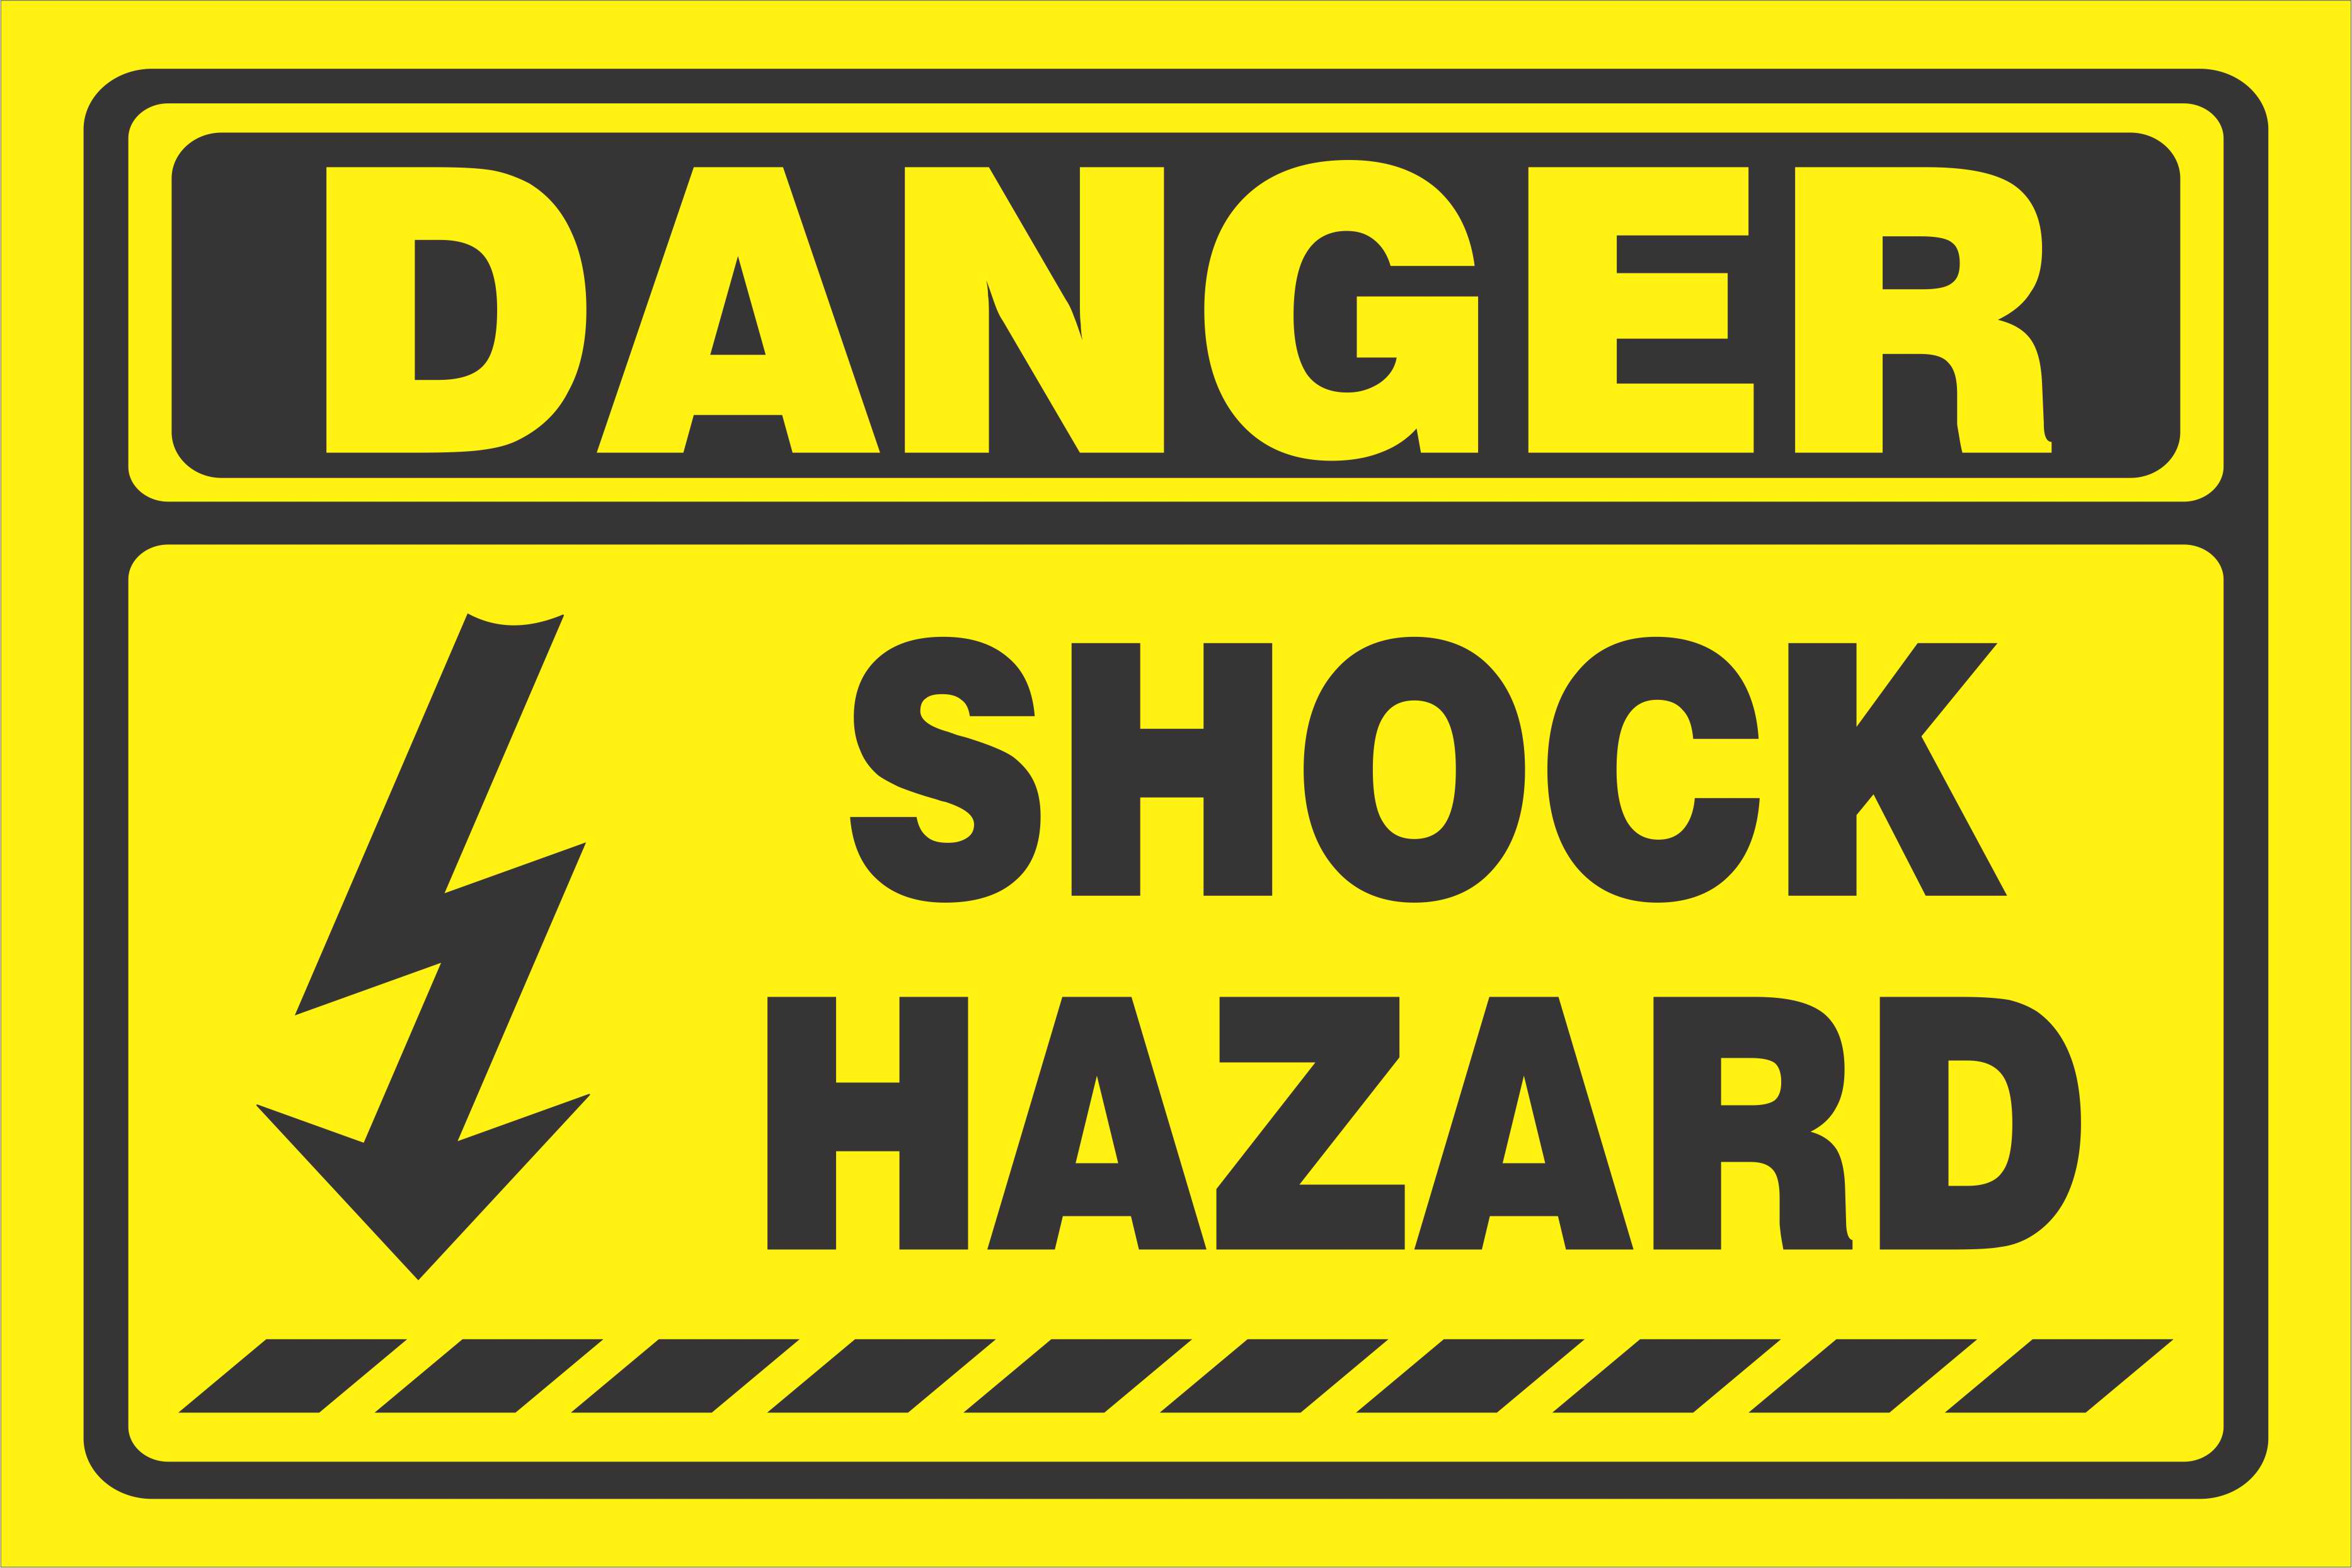 Danger clipart hazard Art Download Sign colored